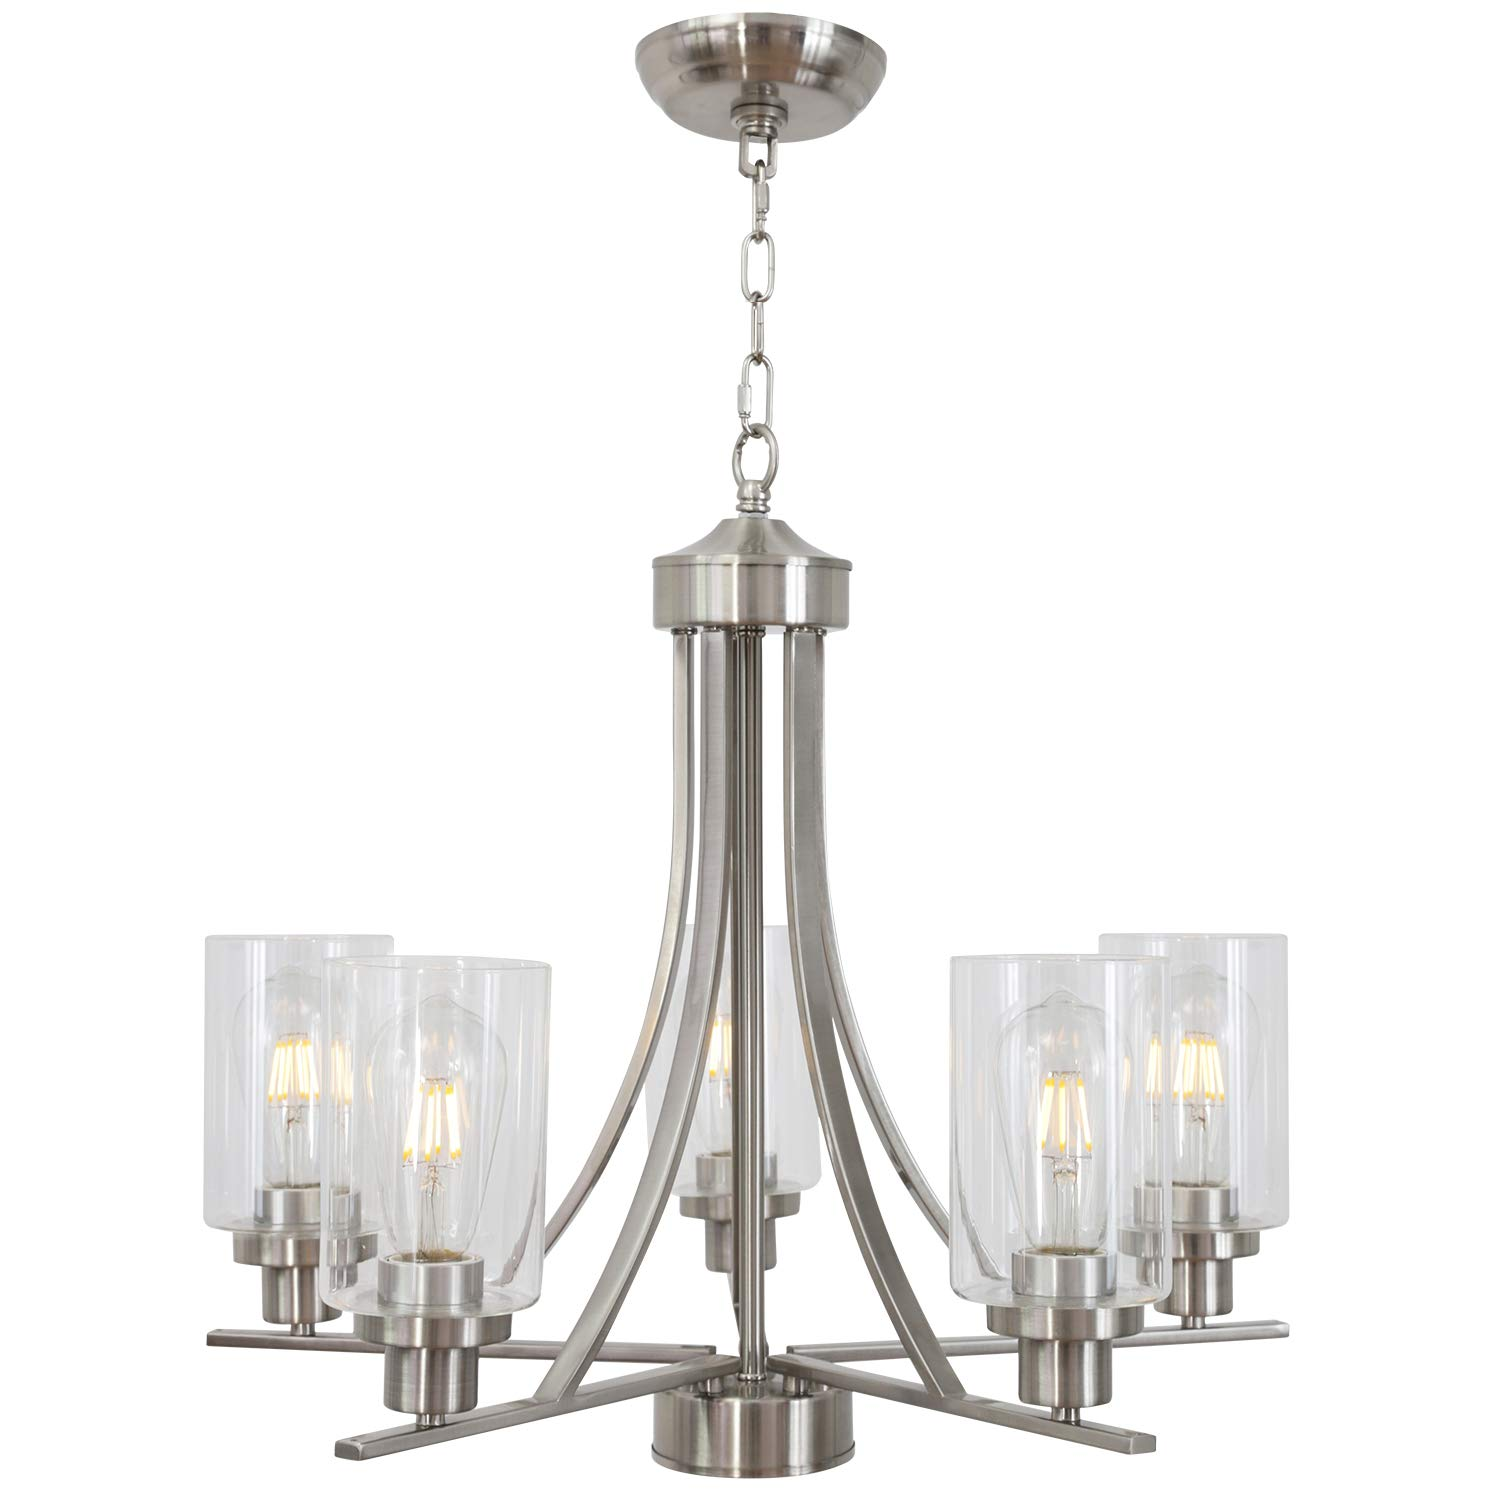 5 Lighting Fixtures